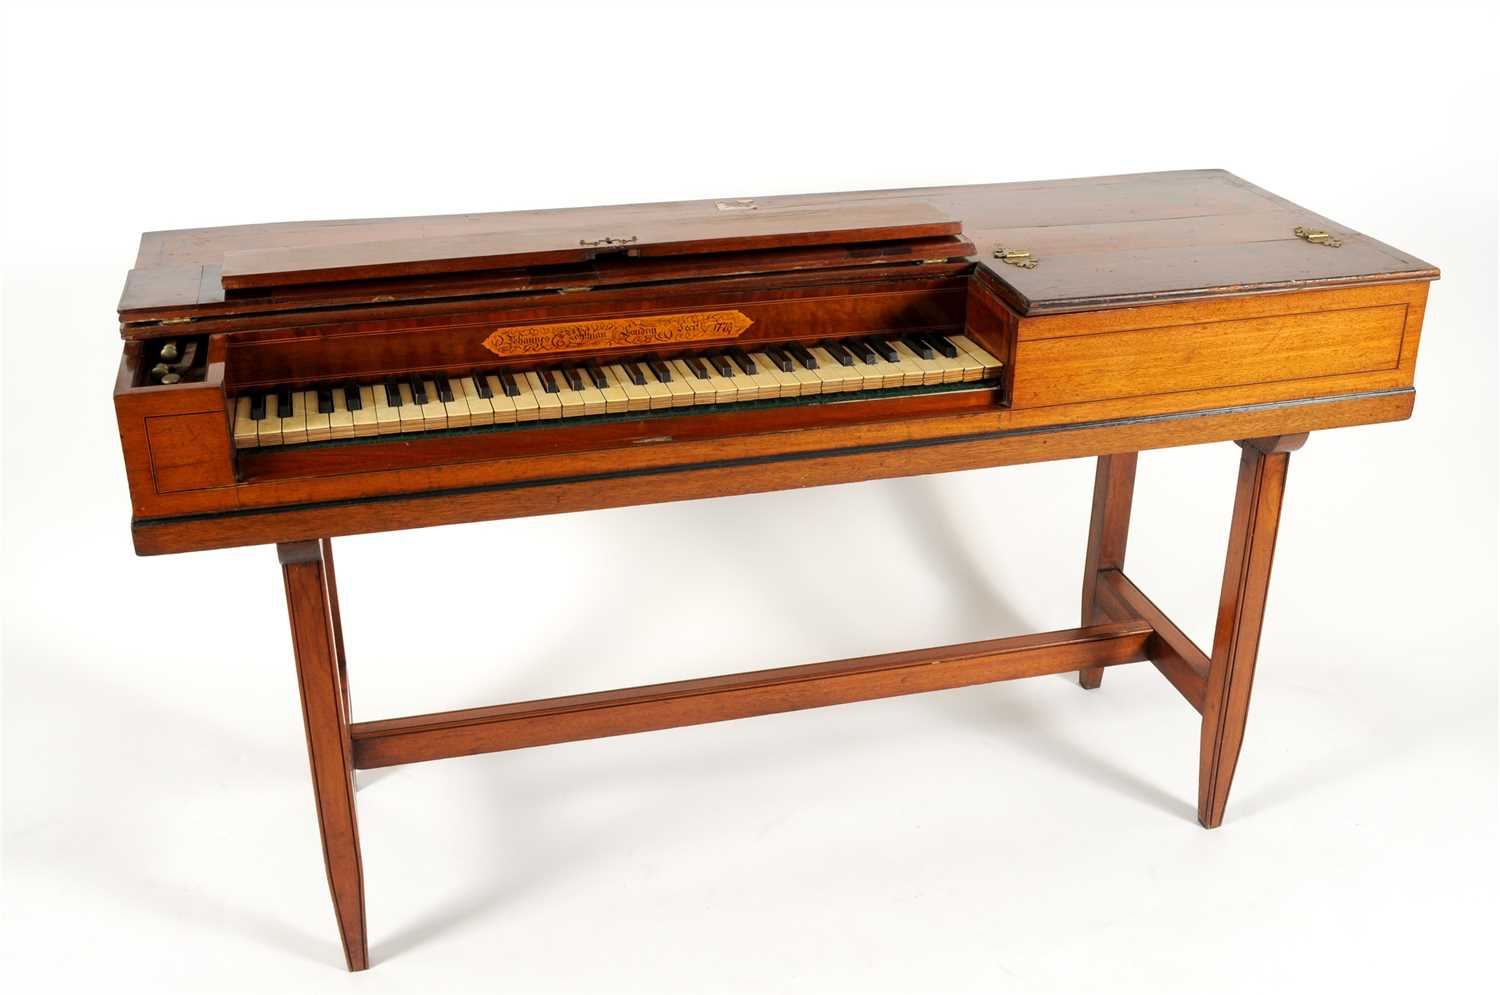 576 - An 18th century mahogany cased square piano by Johannes Pohlman, London